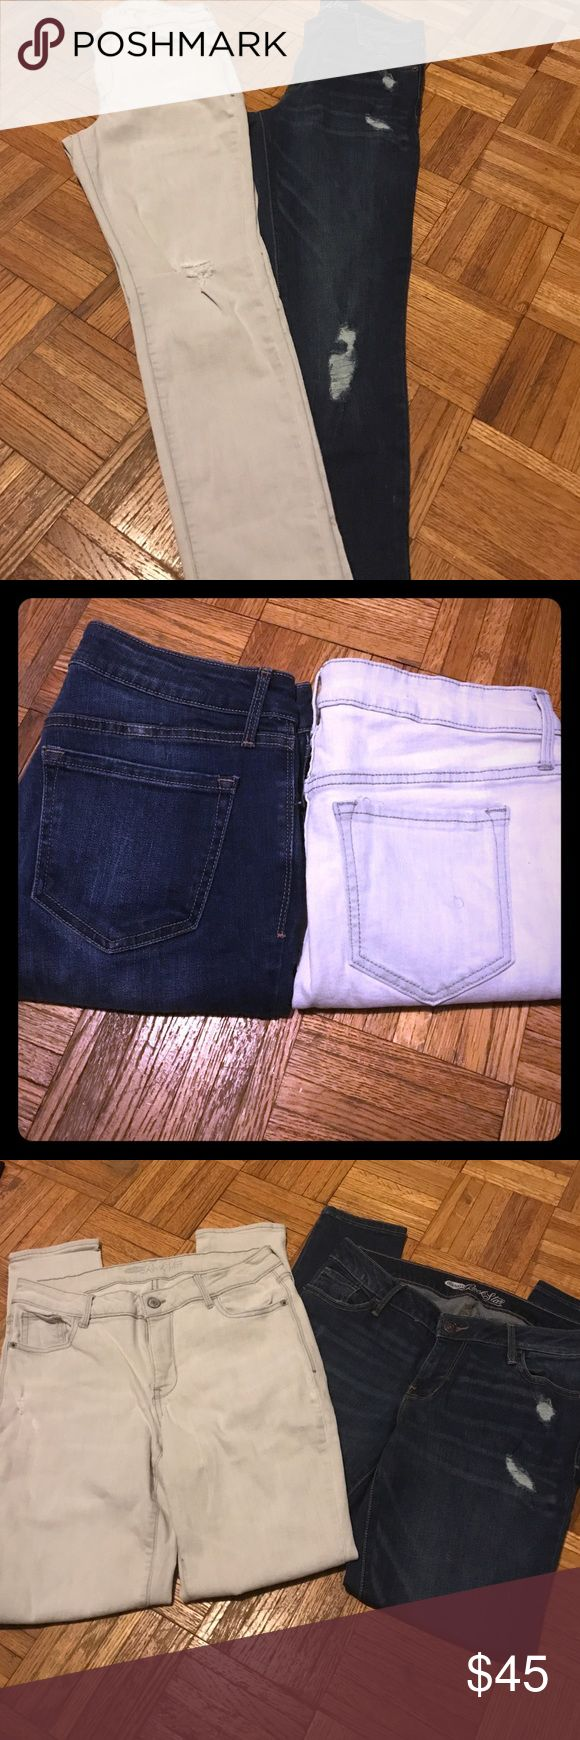 "Old Navy Distressed Rockstar Jeans Lot Of 2 Old Navy distressed Rockstar Jeans. This is a lot of 2 ( 1 Gray & 1 Blue). In like new condition. Size 10. Inseam approximately 29"" Old Navy Jeans Skinny"